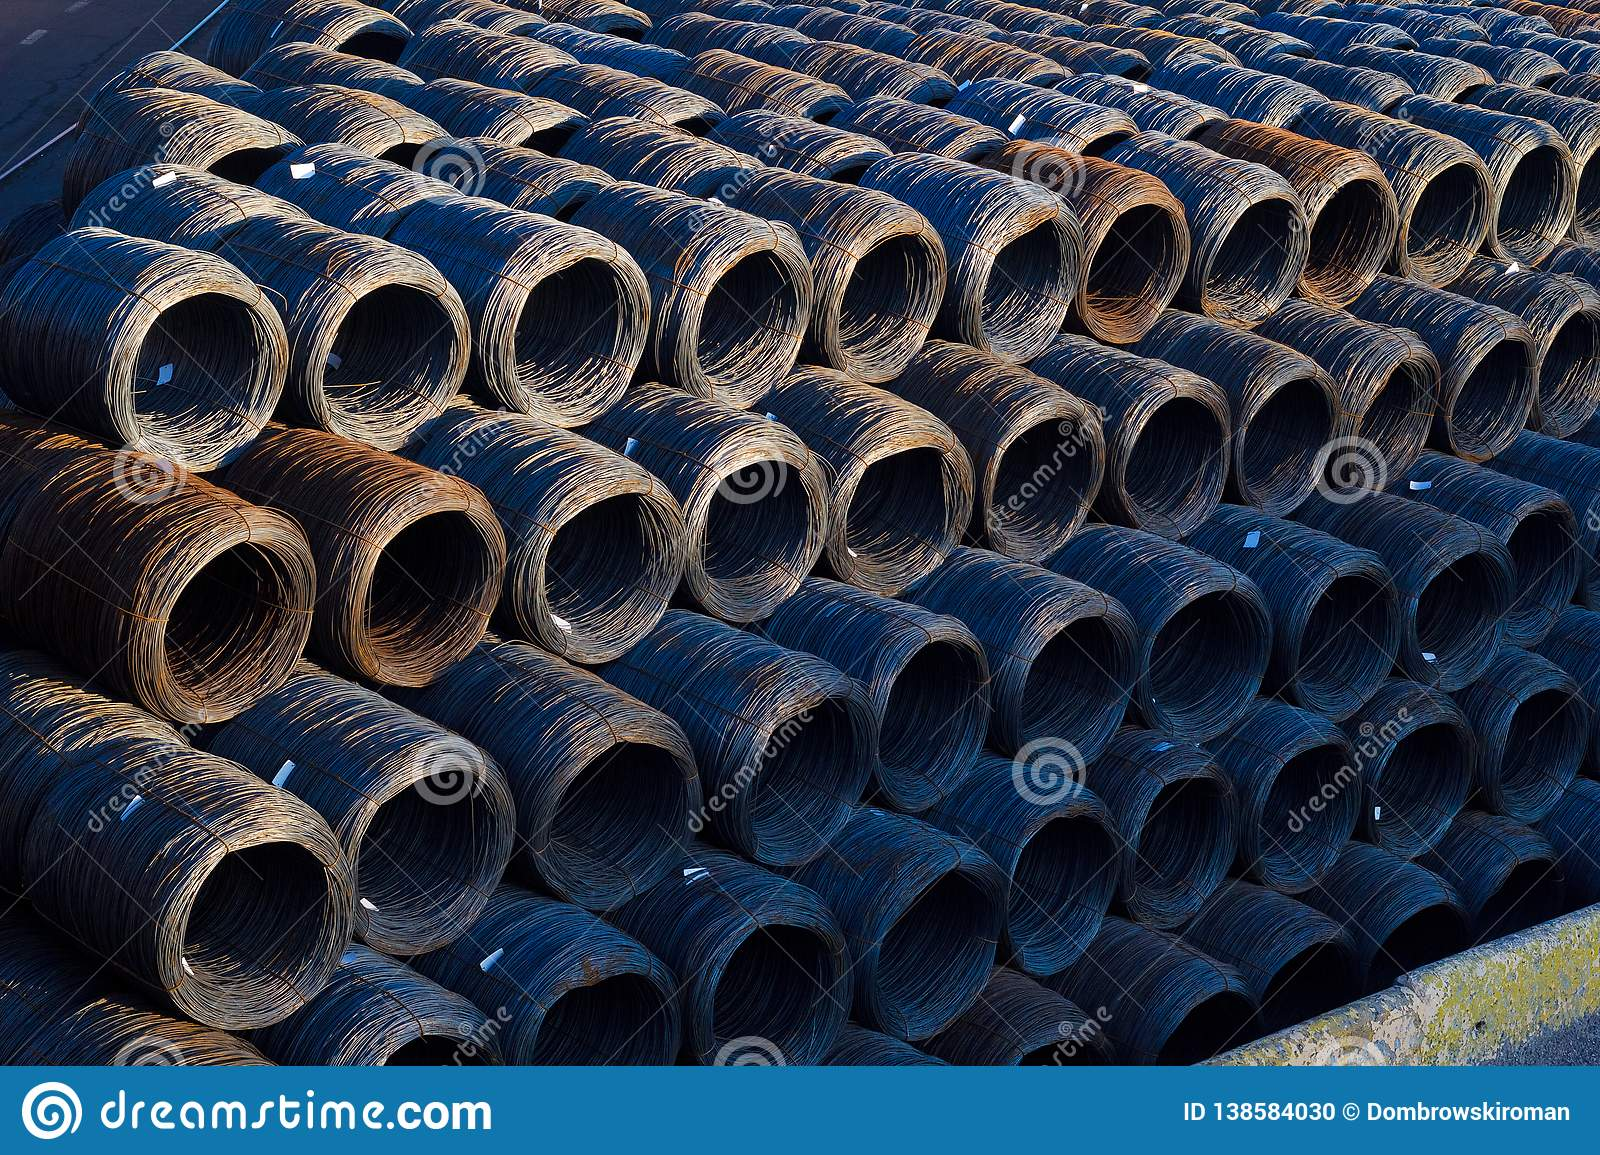 Stock of Industrial wire rolls - coil cable fiber optic technology mechanical